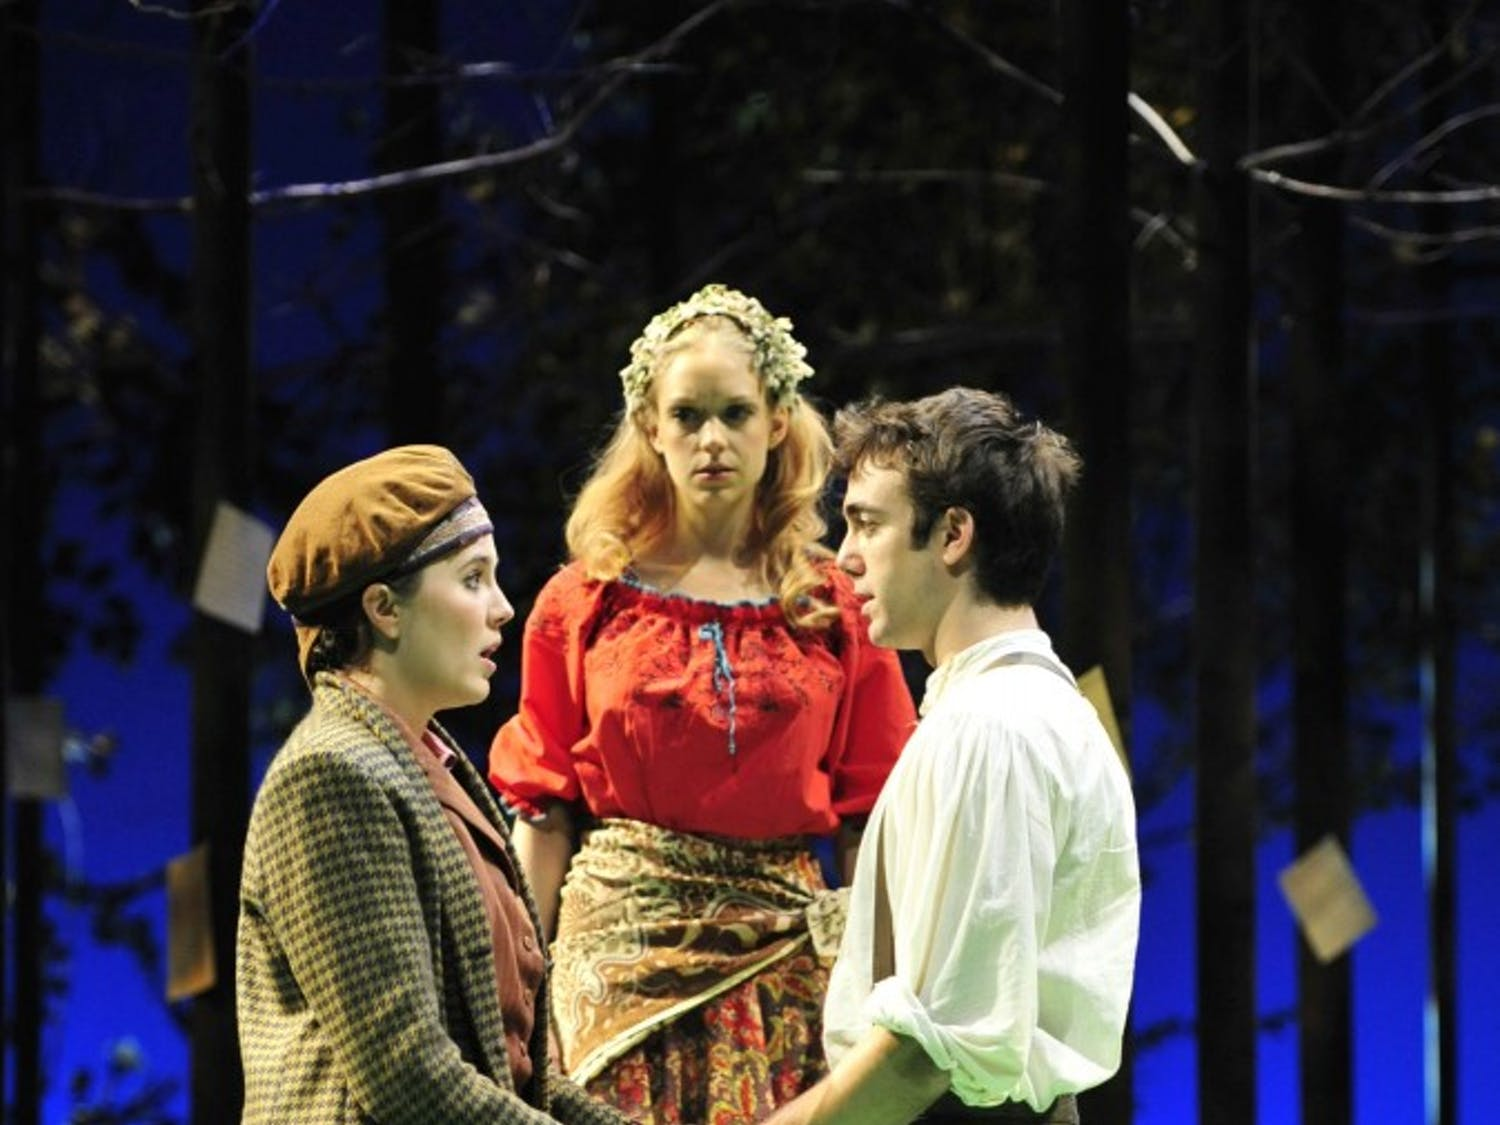 """William Shakespeare's comedic masterpiece """"As You Like It"""" opened Sept. 22 in the Paul Green Theatre as the first mainstage production at PlayMakers Repertory Company. The show, a classic of mistaken identities and mixed up romances, runs until Oct. 10."""